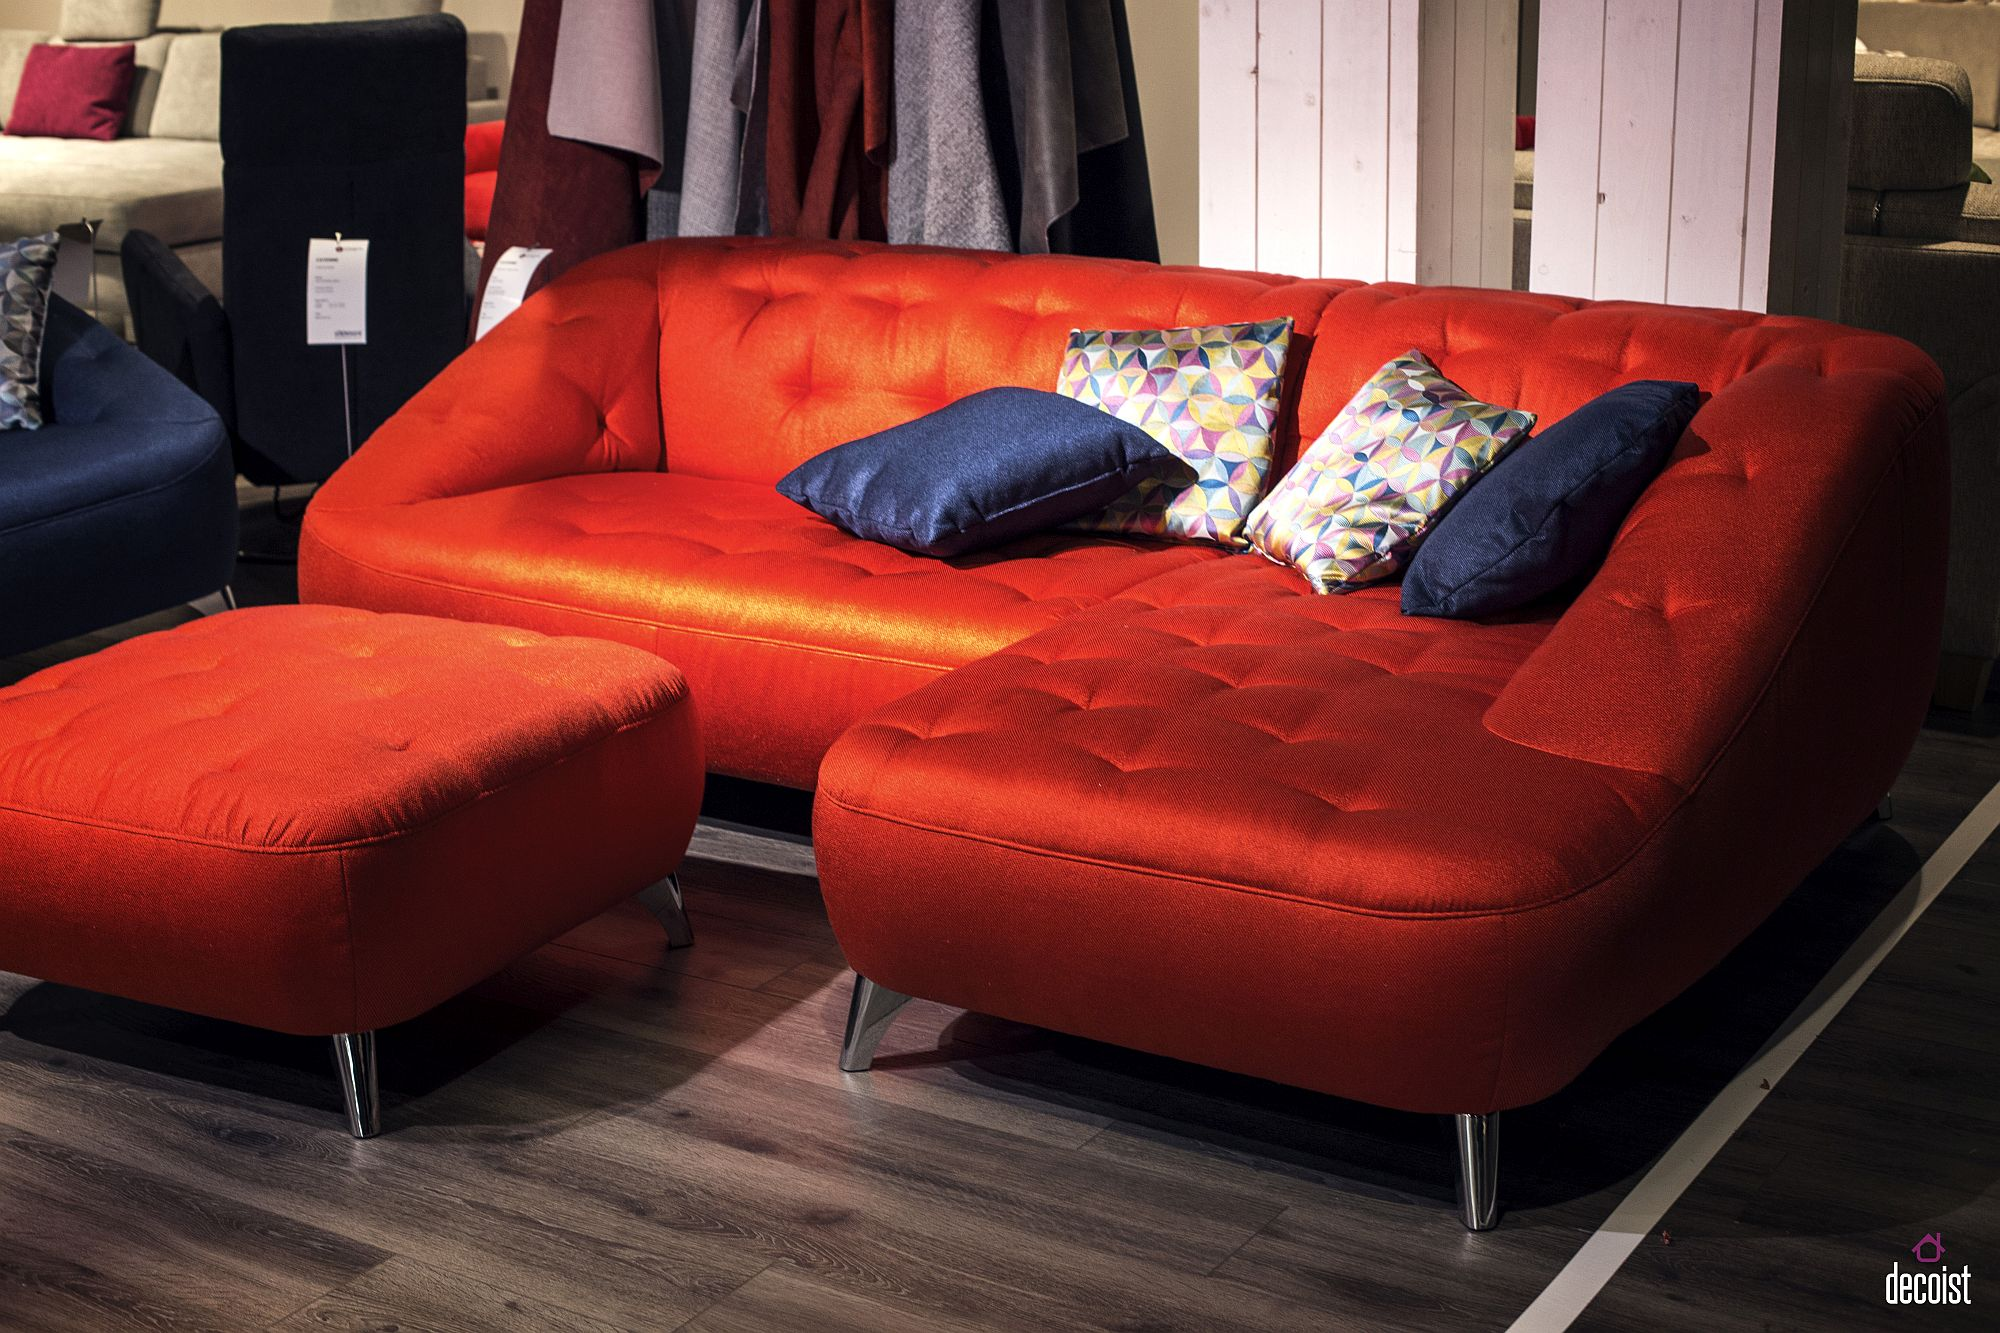 Matching ottoman adds to the comfort and class of the colorful couch